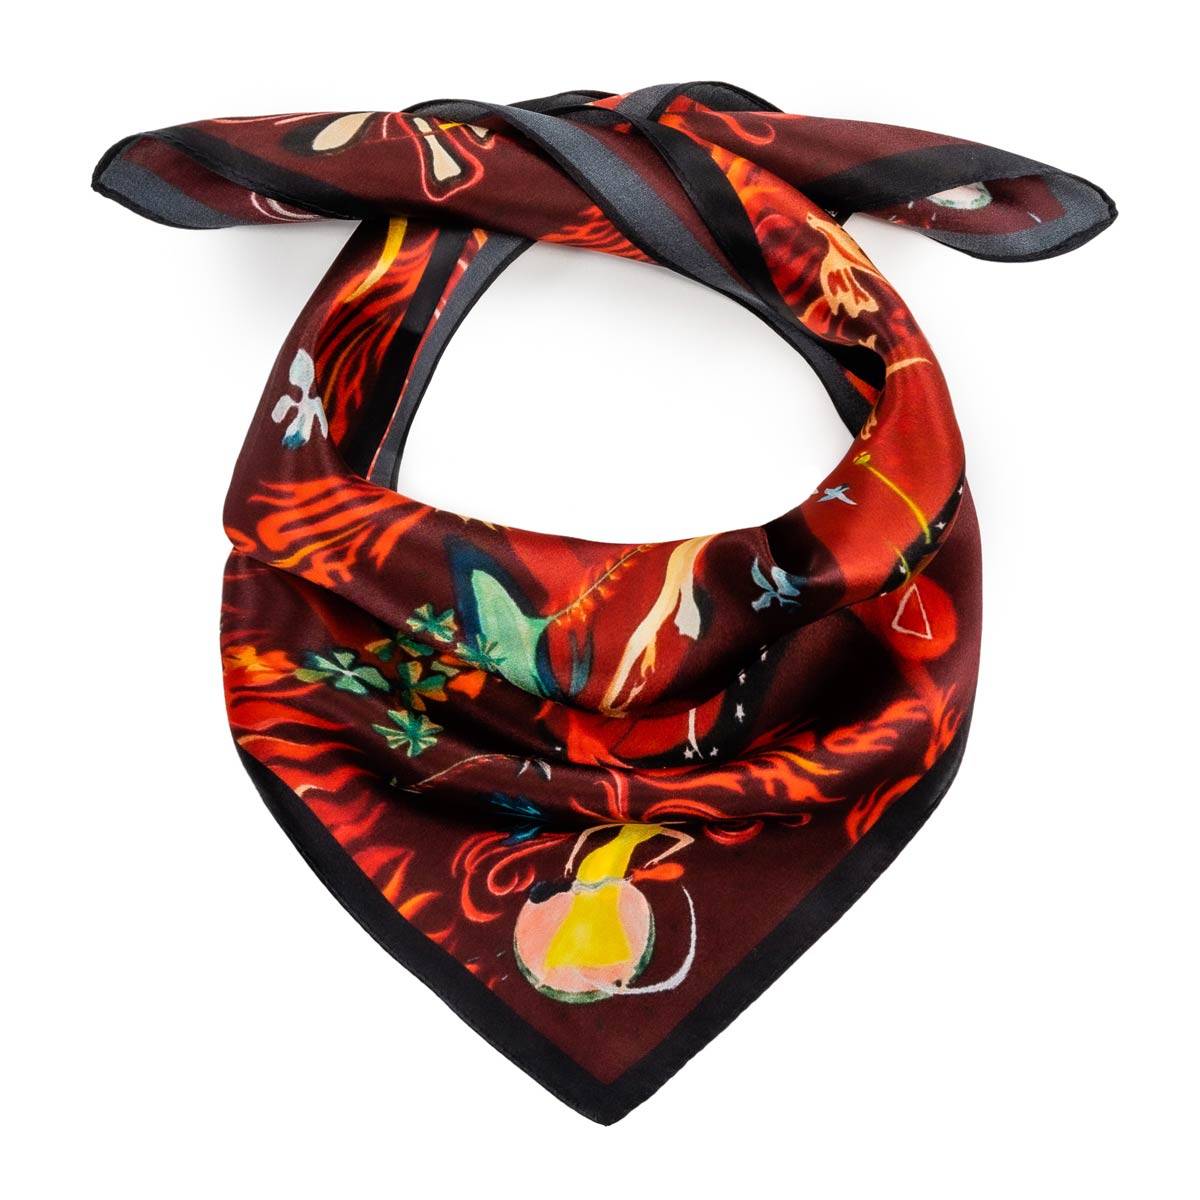 AT-06365_F12-1-foulard-carre-soie-enfer-bordeaux